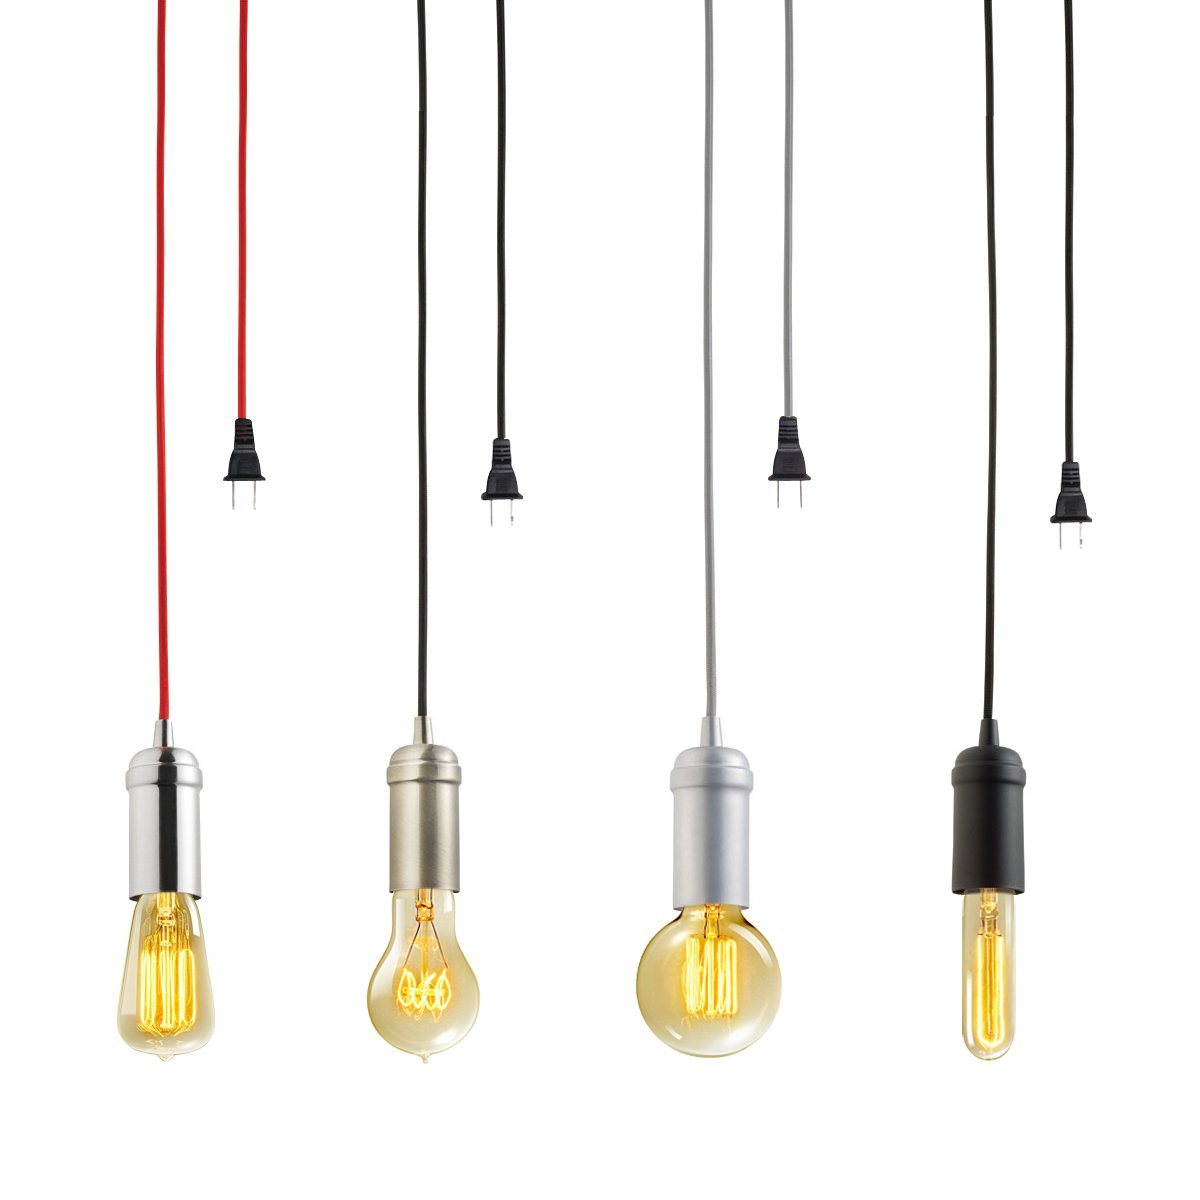 Globe Electric Vintage Edison 1-Light Plug-In Mini Pendant, Matte Black Finish, Black Designer Woven Fabric Cord, In-Line On/Off Switch, 65114 by Globe Electric (Image #3)